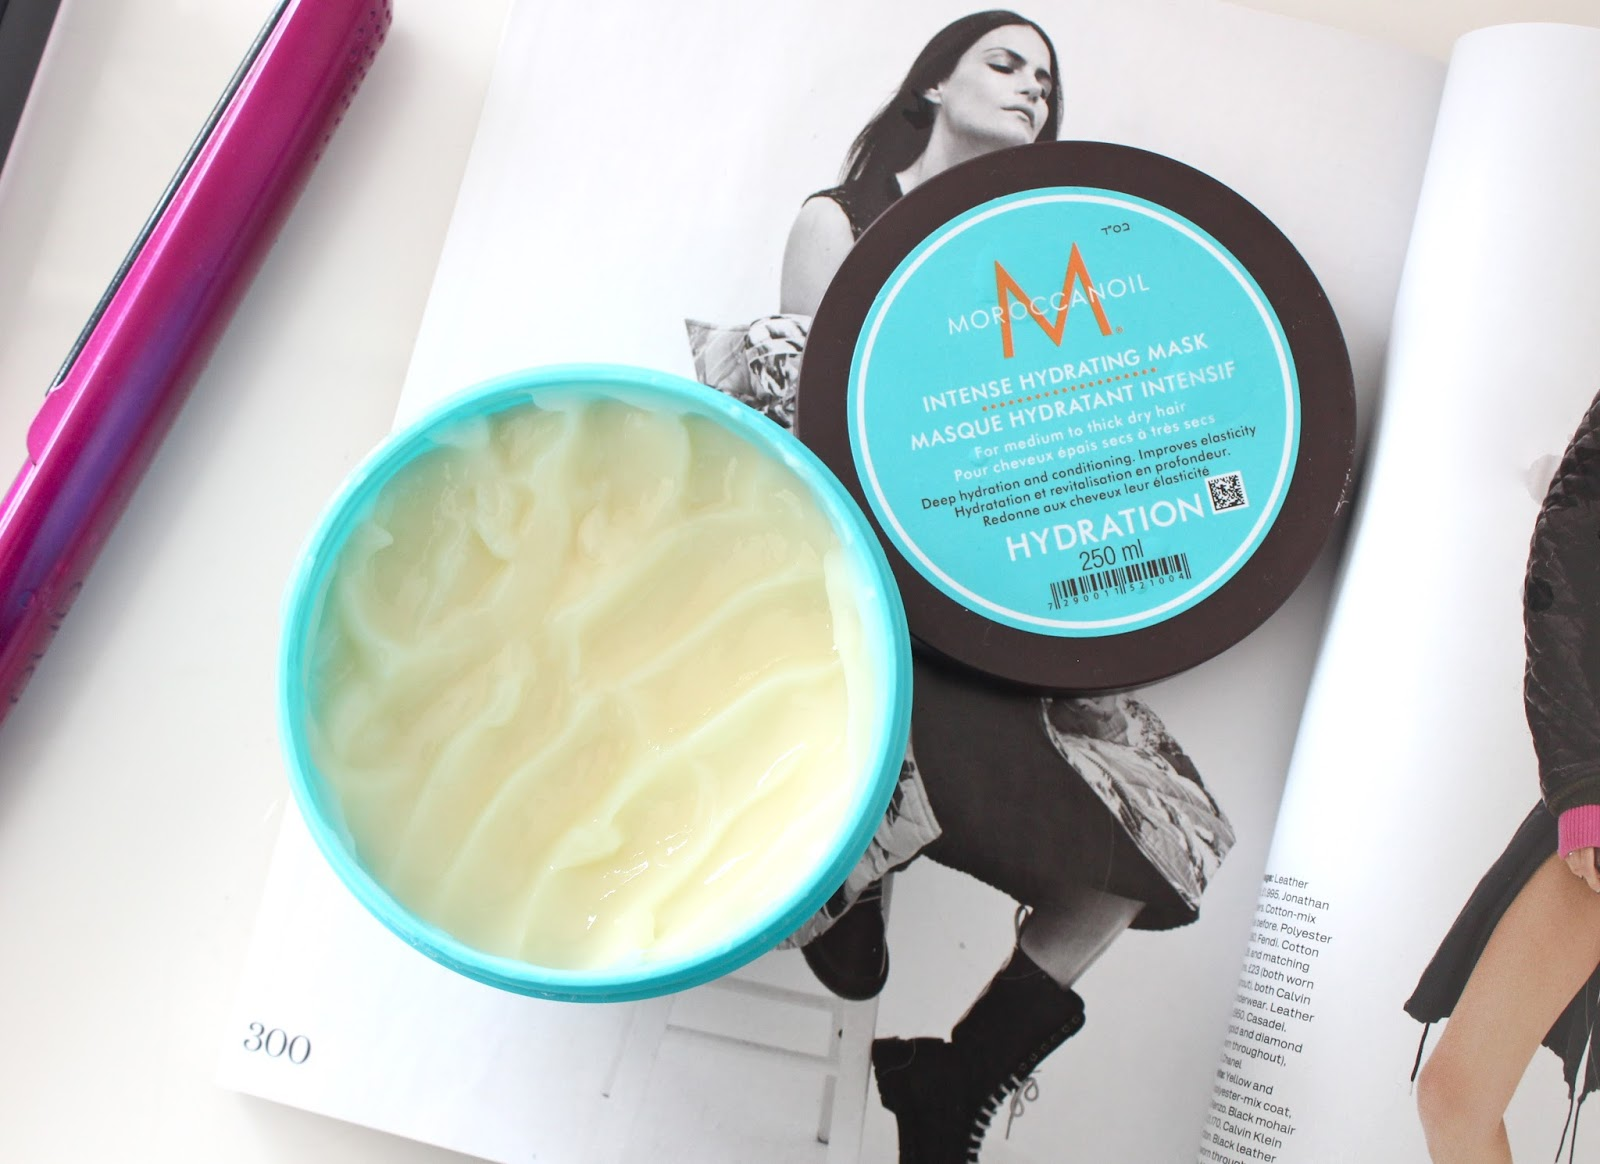 Favourite Hair Mask, Moroccan Oil Intense Hair Mask, Moroccan Oil Intense Hair Mask Review